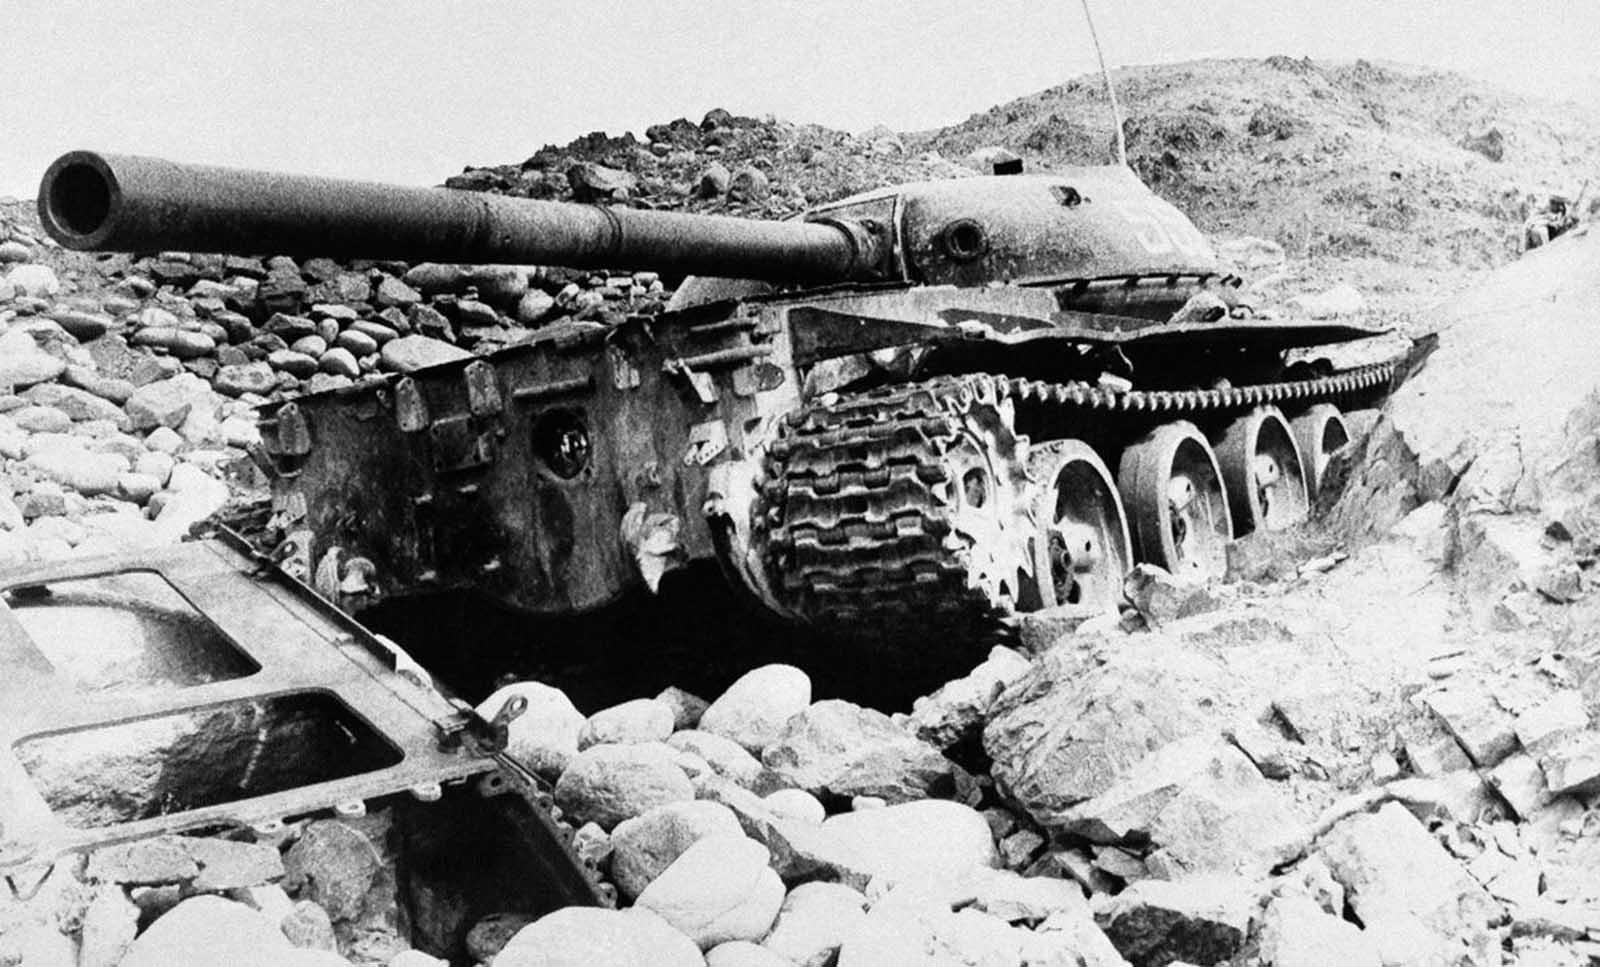 A Russian T-62 Commando tank destroyed in the Panjshir River Valley in Parwan Valley about 180 km north of Kabul, on February 25, 1981.